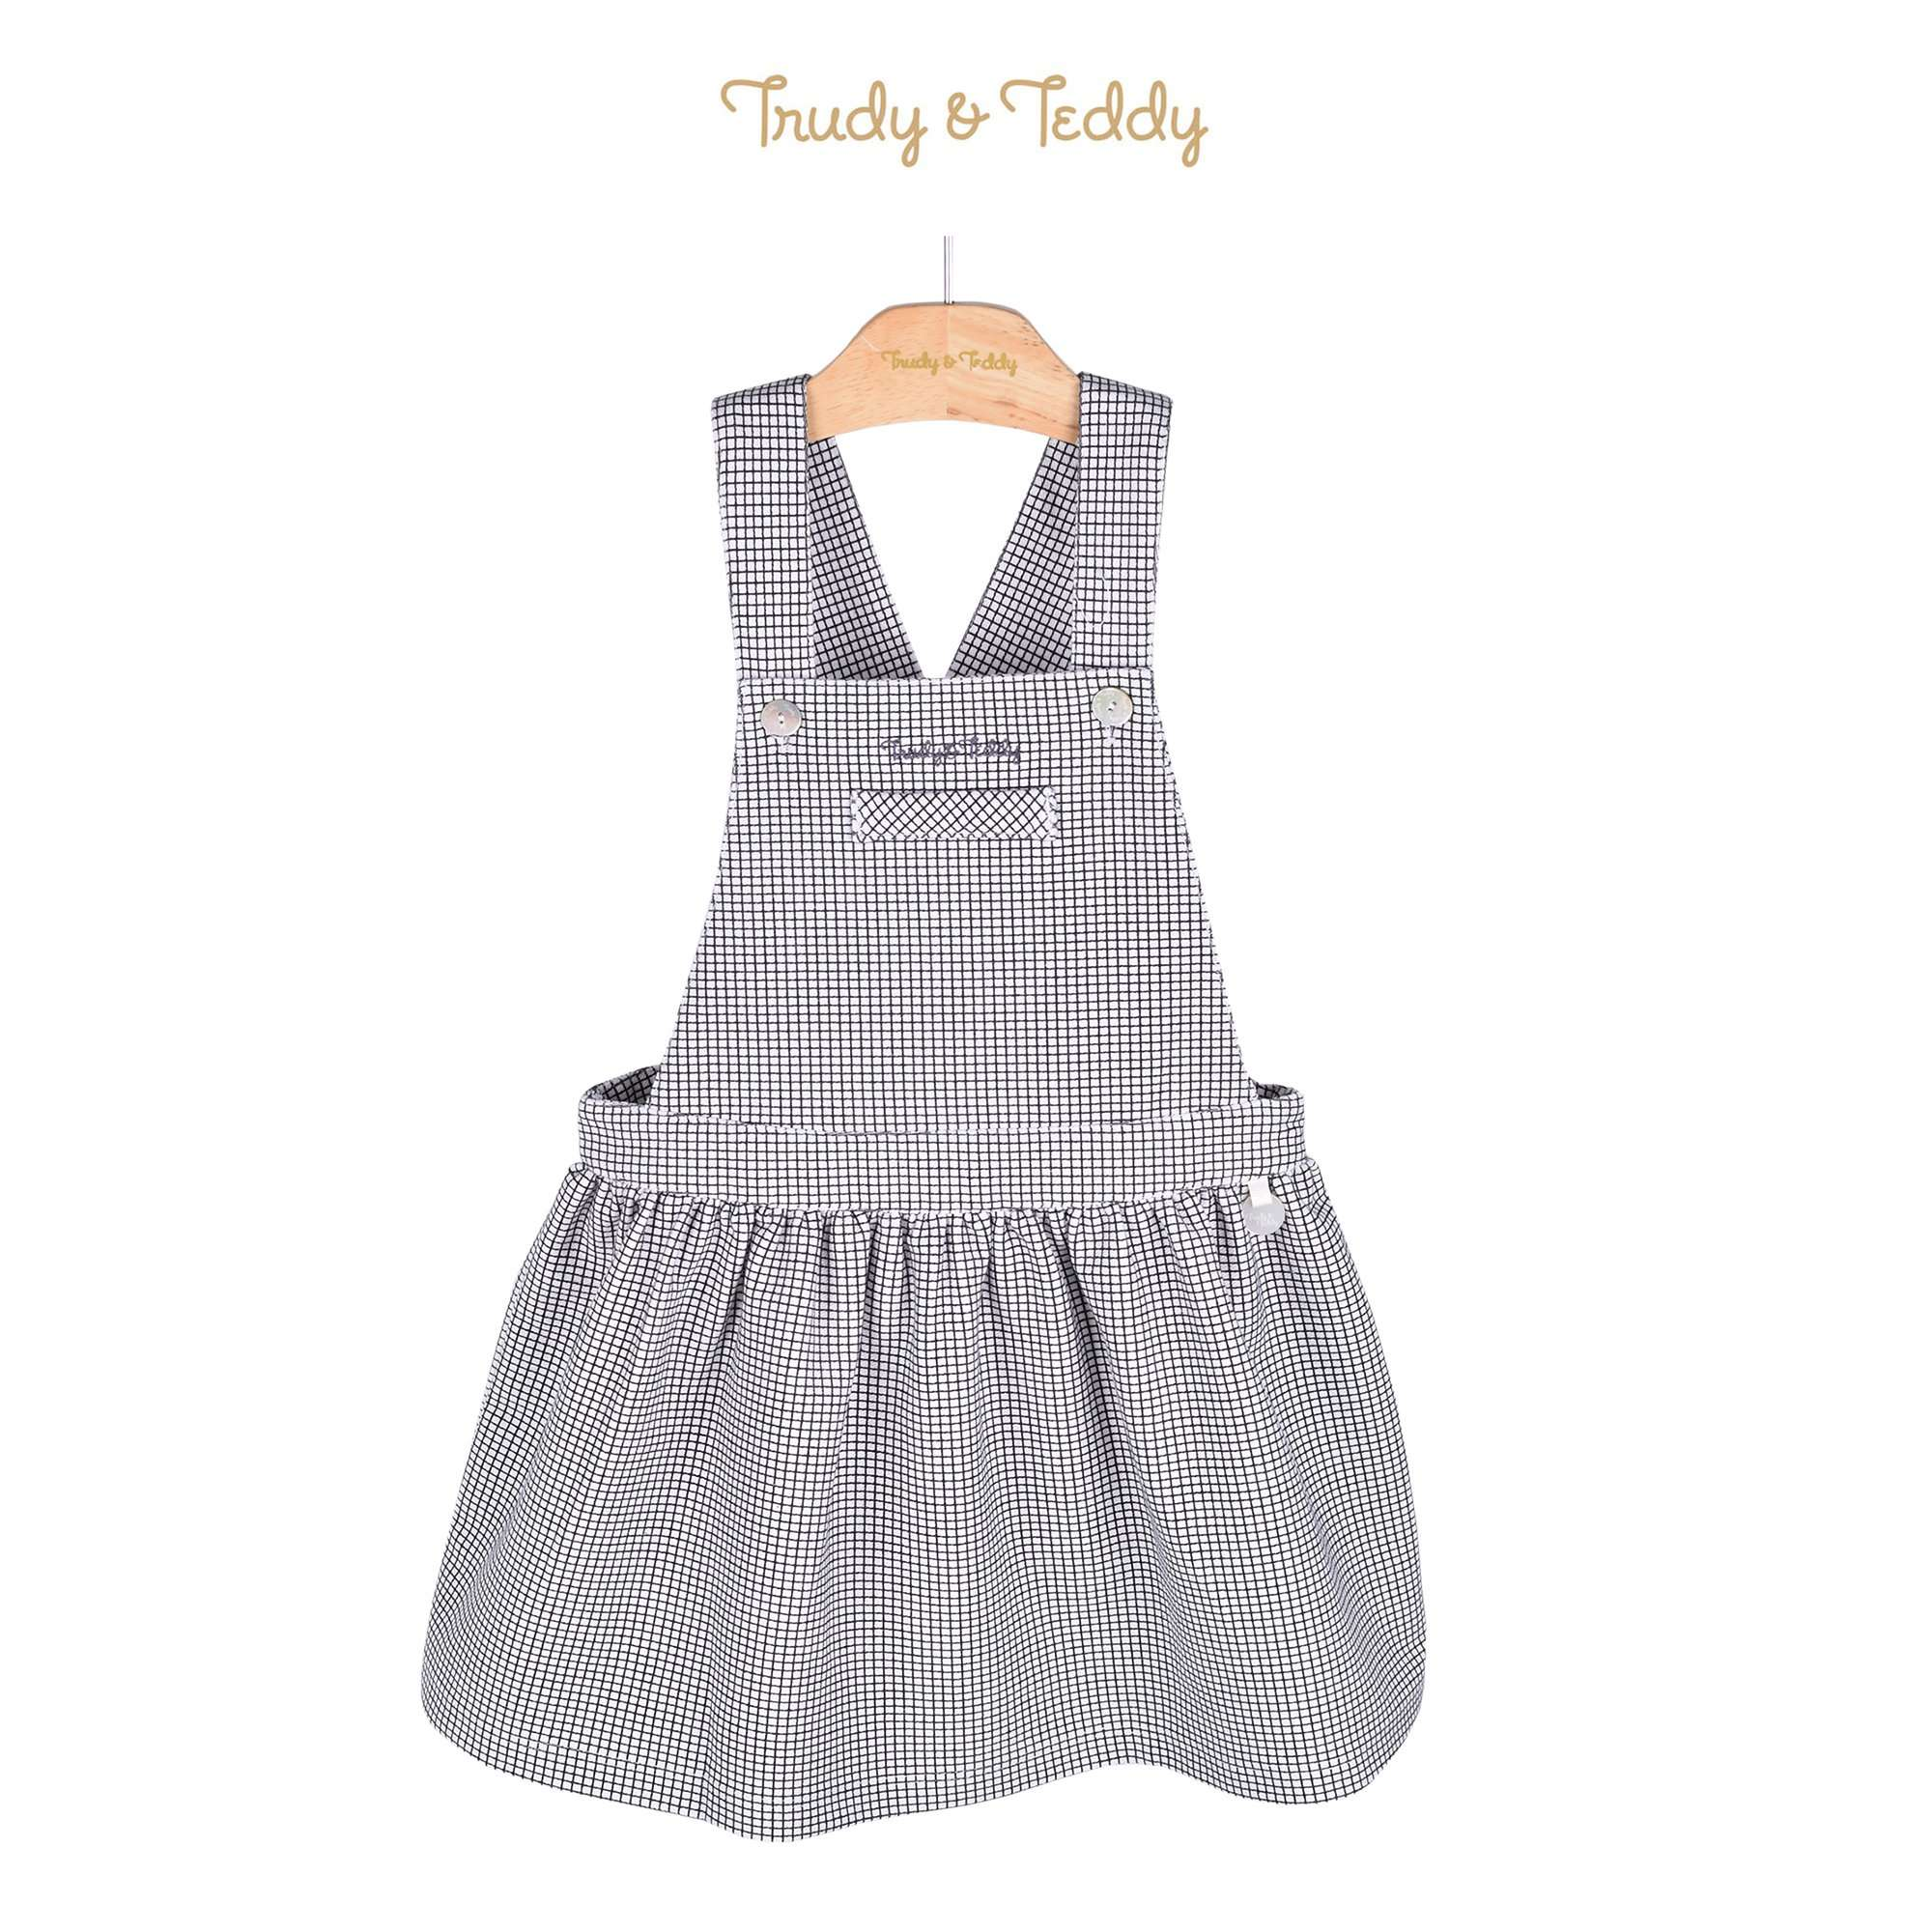 Trudy & Teddy Toddler Girl Pinafore 815122-271 : Buy Trudy & Teddy online at CMG.MY